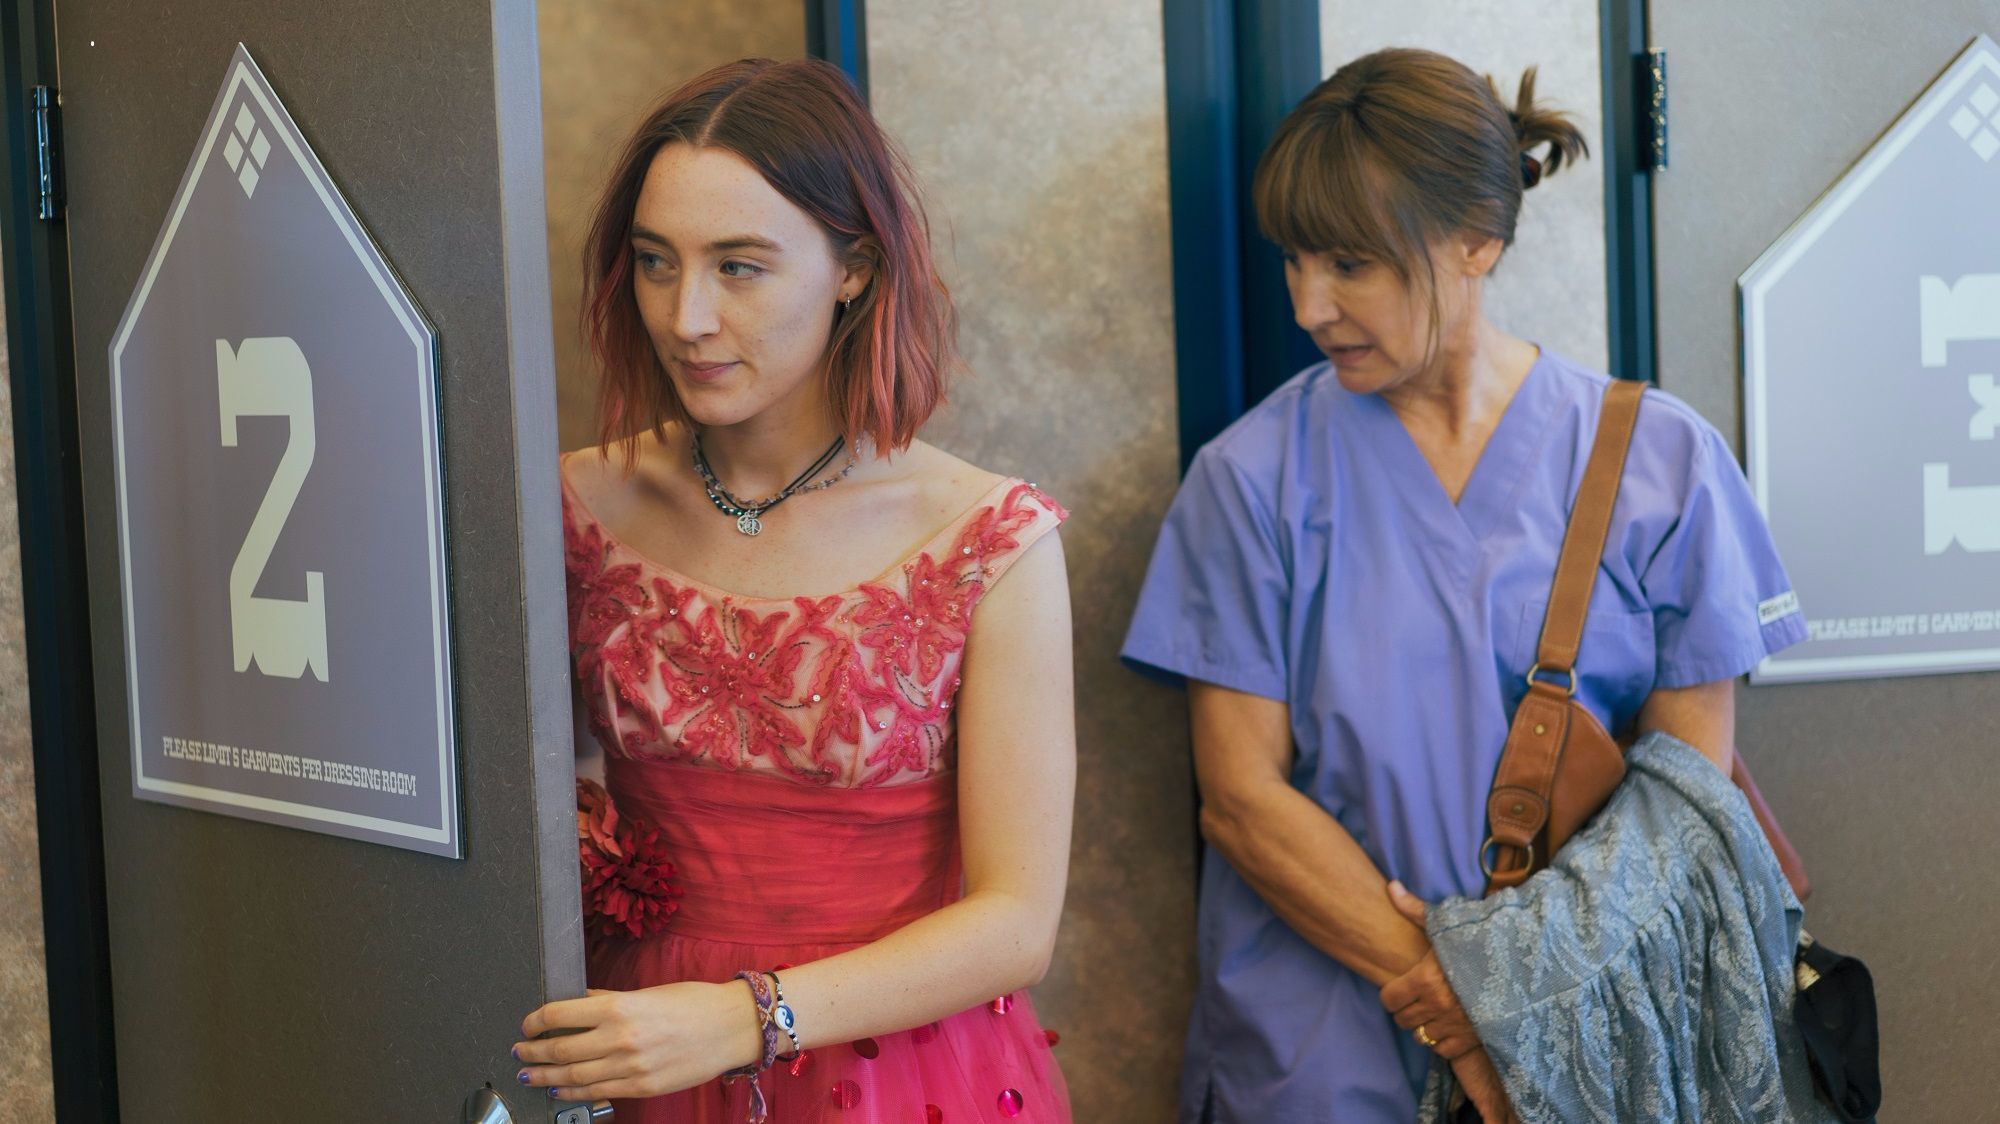 Risultati immagini per lady bird hd wallpaper movie